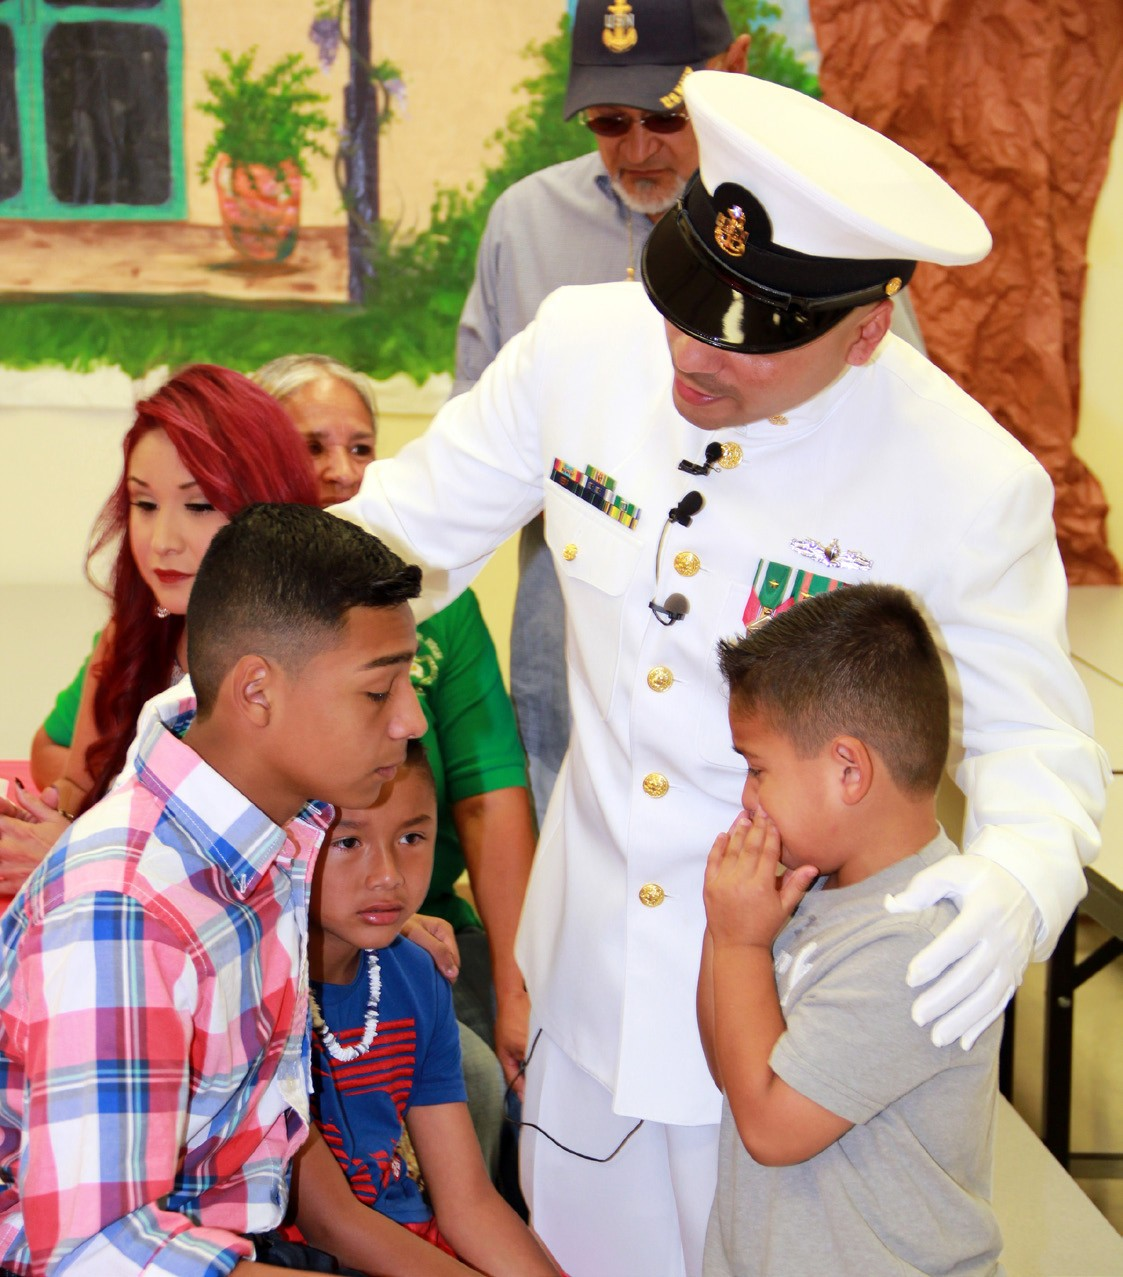 Adrian Macias, 13, Adyn Macias, 7, and Vinny Macias, 6, sons of United States Navy Senior Chief Petty Officer Vincent Macias were surprised Tuesday during lunch at the Pleasanton Primary. The dad returned home to Pleasanton after being deployed for the past 7 months. The boys' mother Amanda Martinez and grandparents Rosie and Camilo Martinez provided the ruse to get the children together at the school.